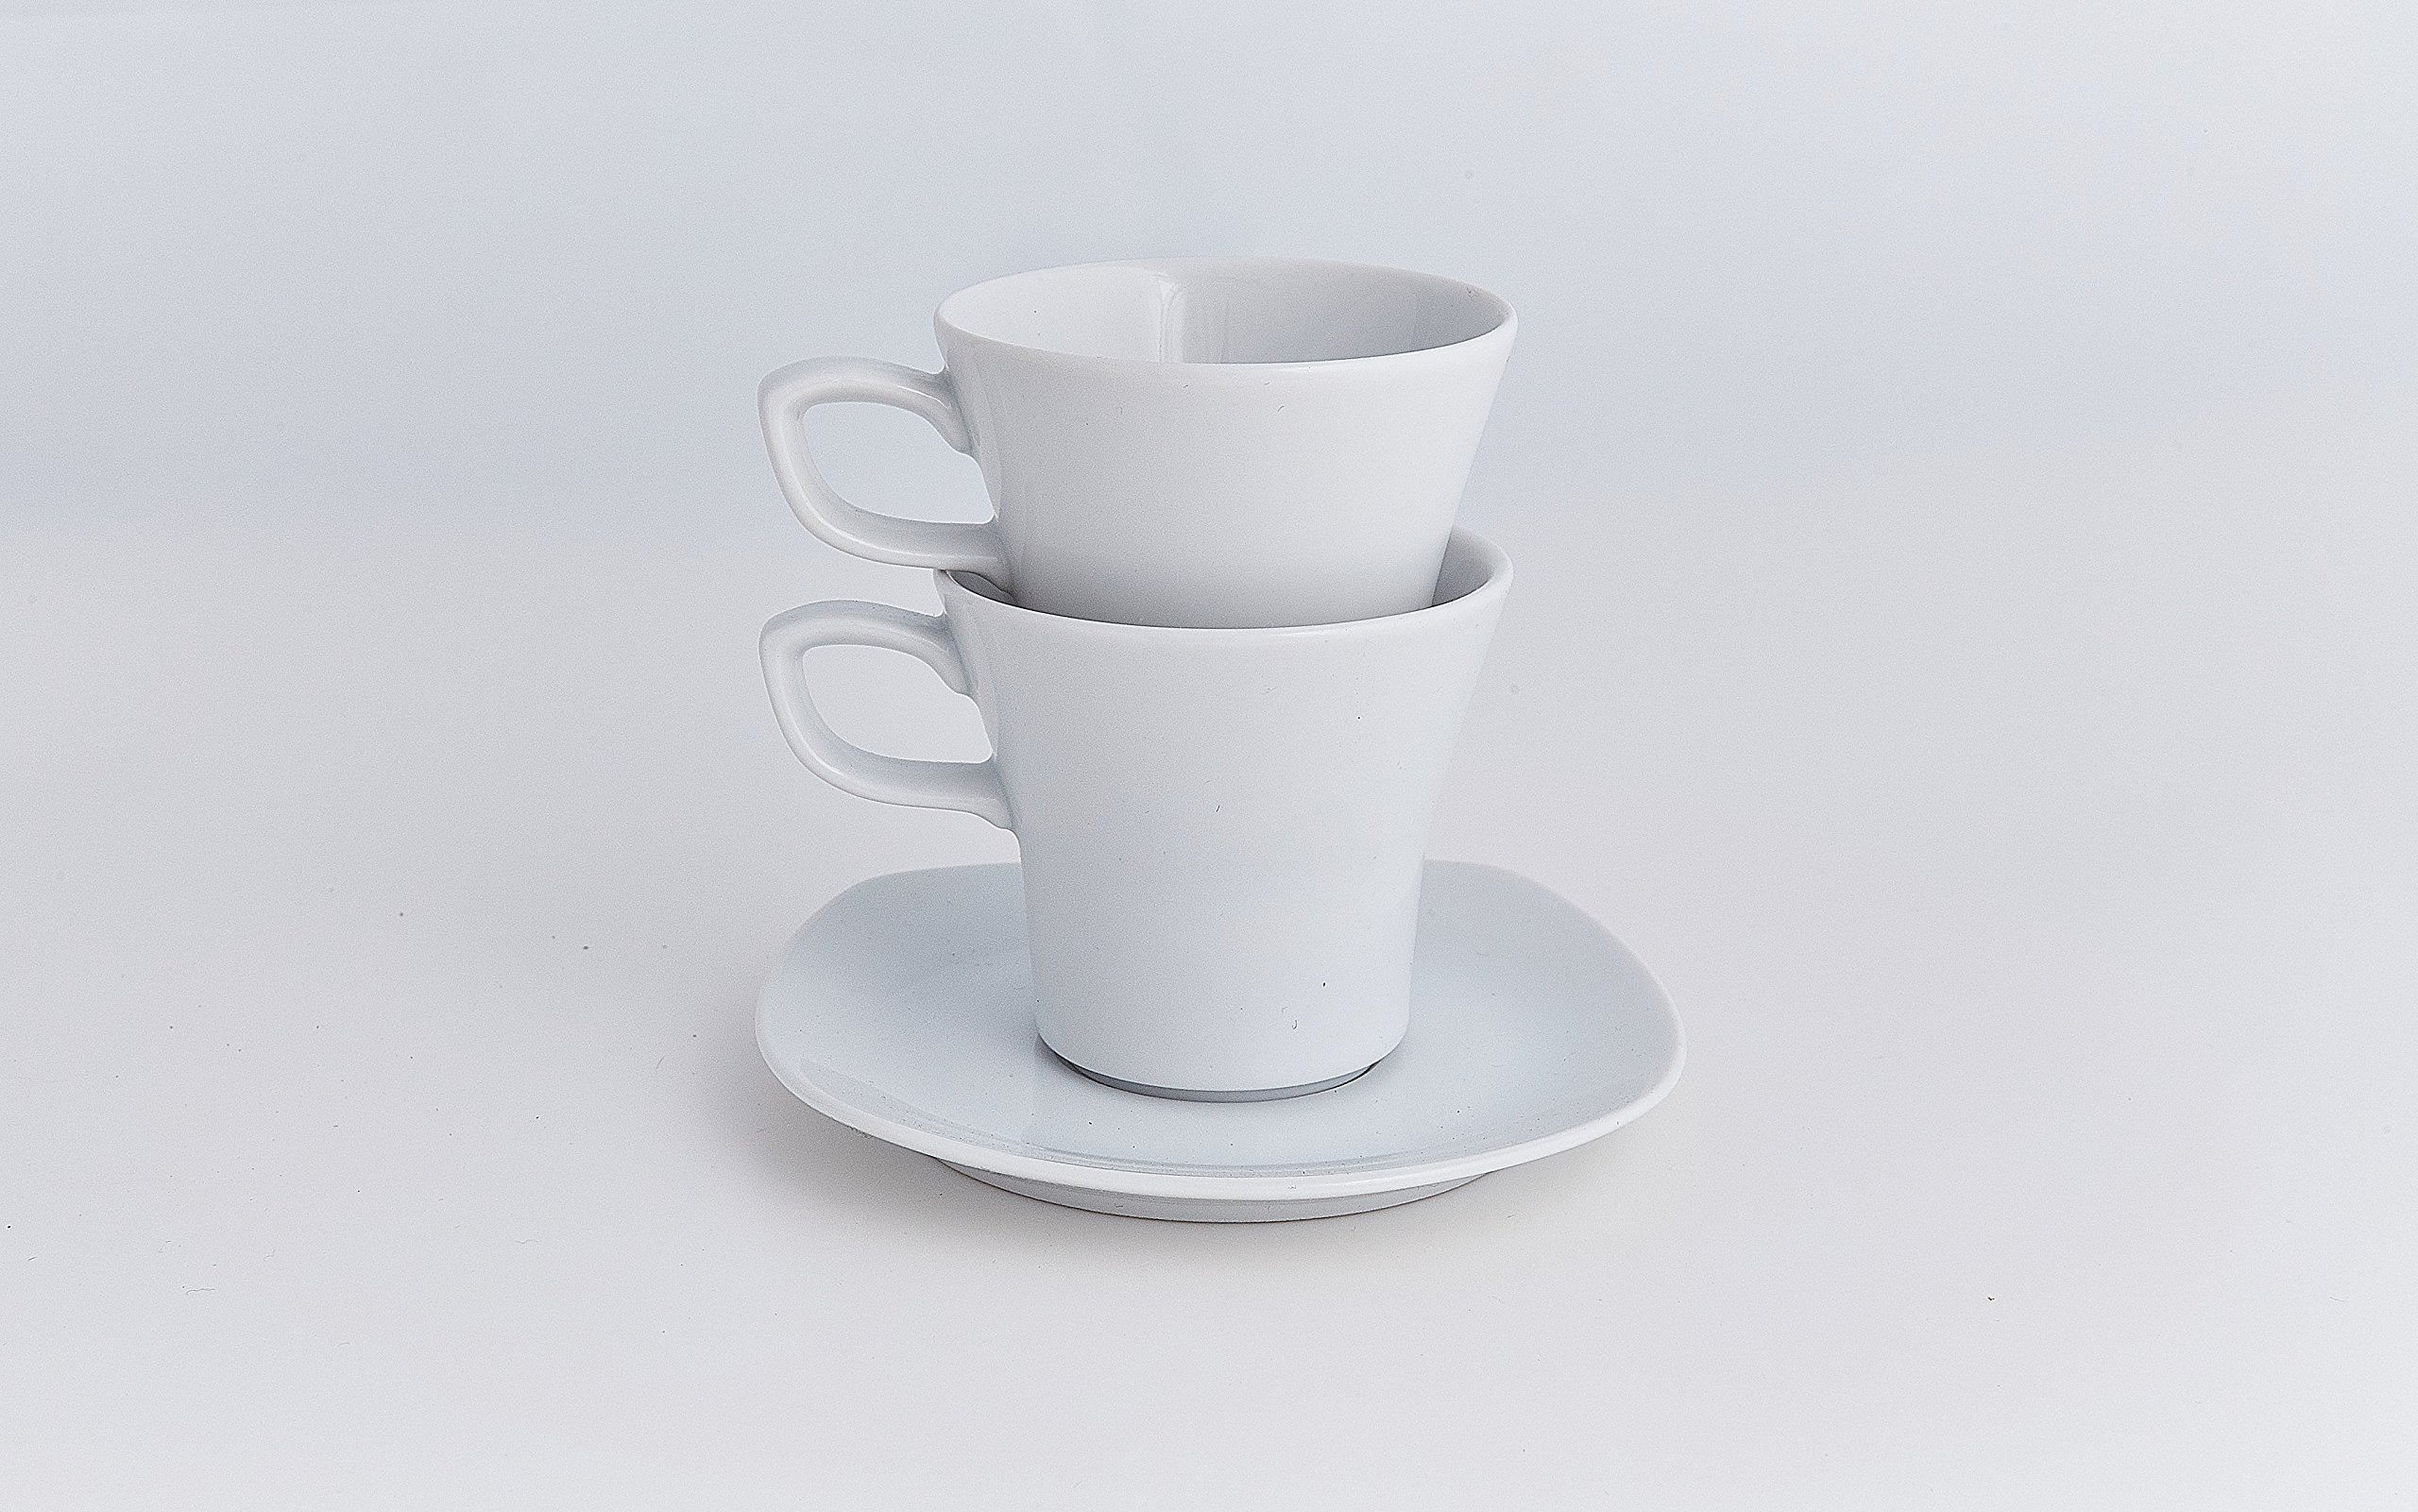 Moritz Zdekauer Square White Espresso Cup & Saucer 4.625'' / 4 oz. | Set of 6 by Moritz Zdekauer (Image #1)